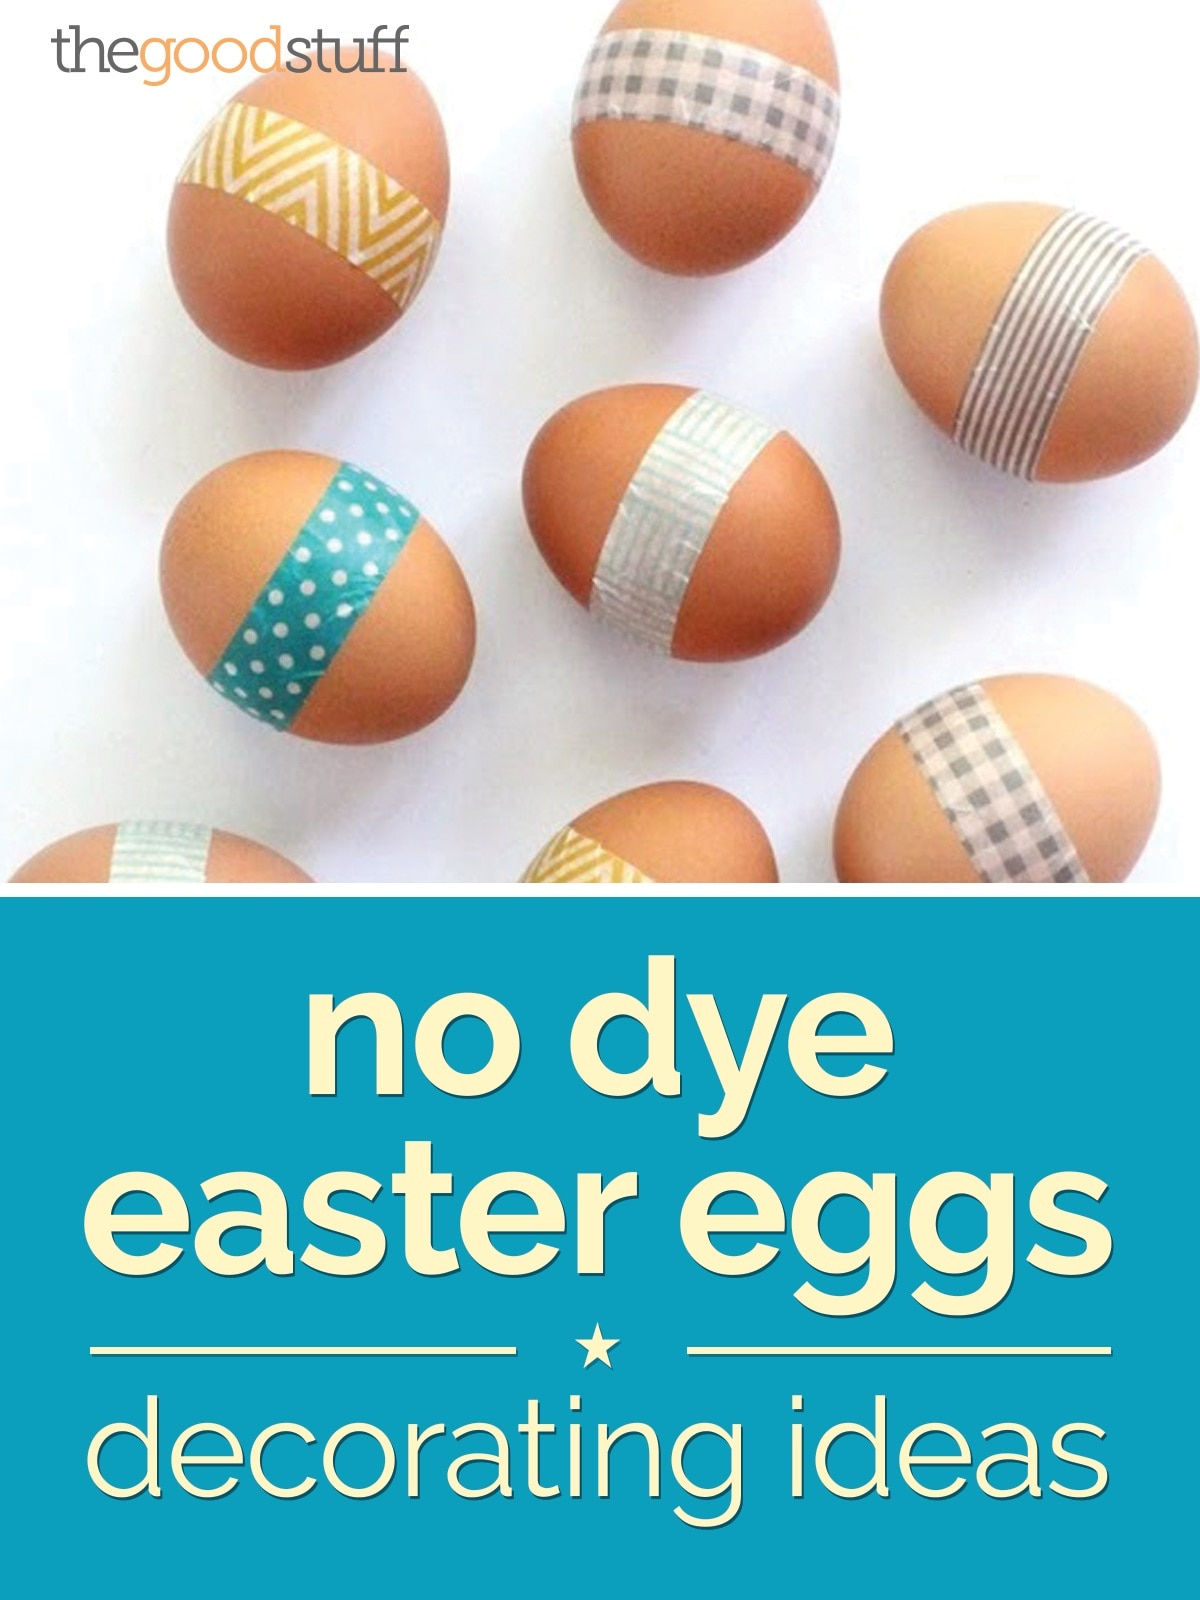 diy-no-dye-easter-egg-ideas